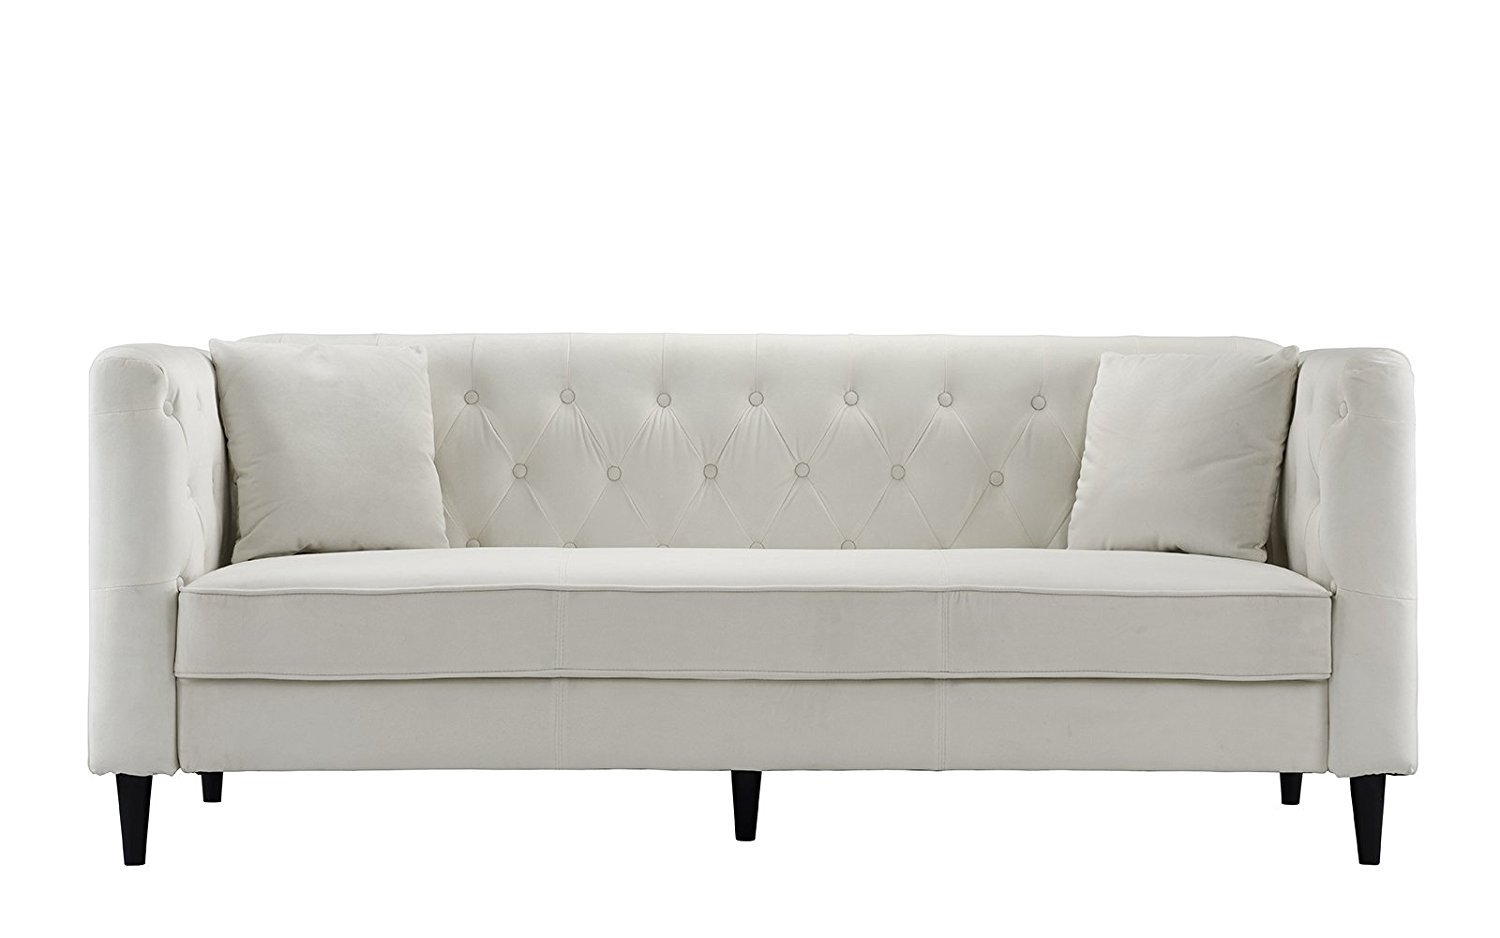 tufted button sofa michael nicholas spartan mid century velvet living room couch with buttons beige walmart com